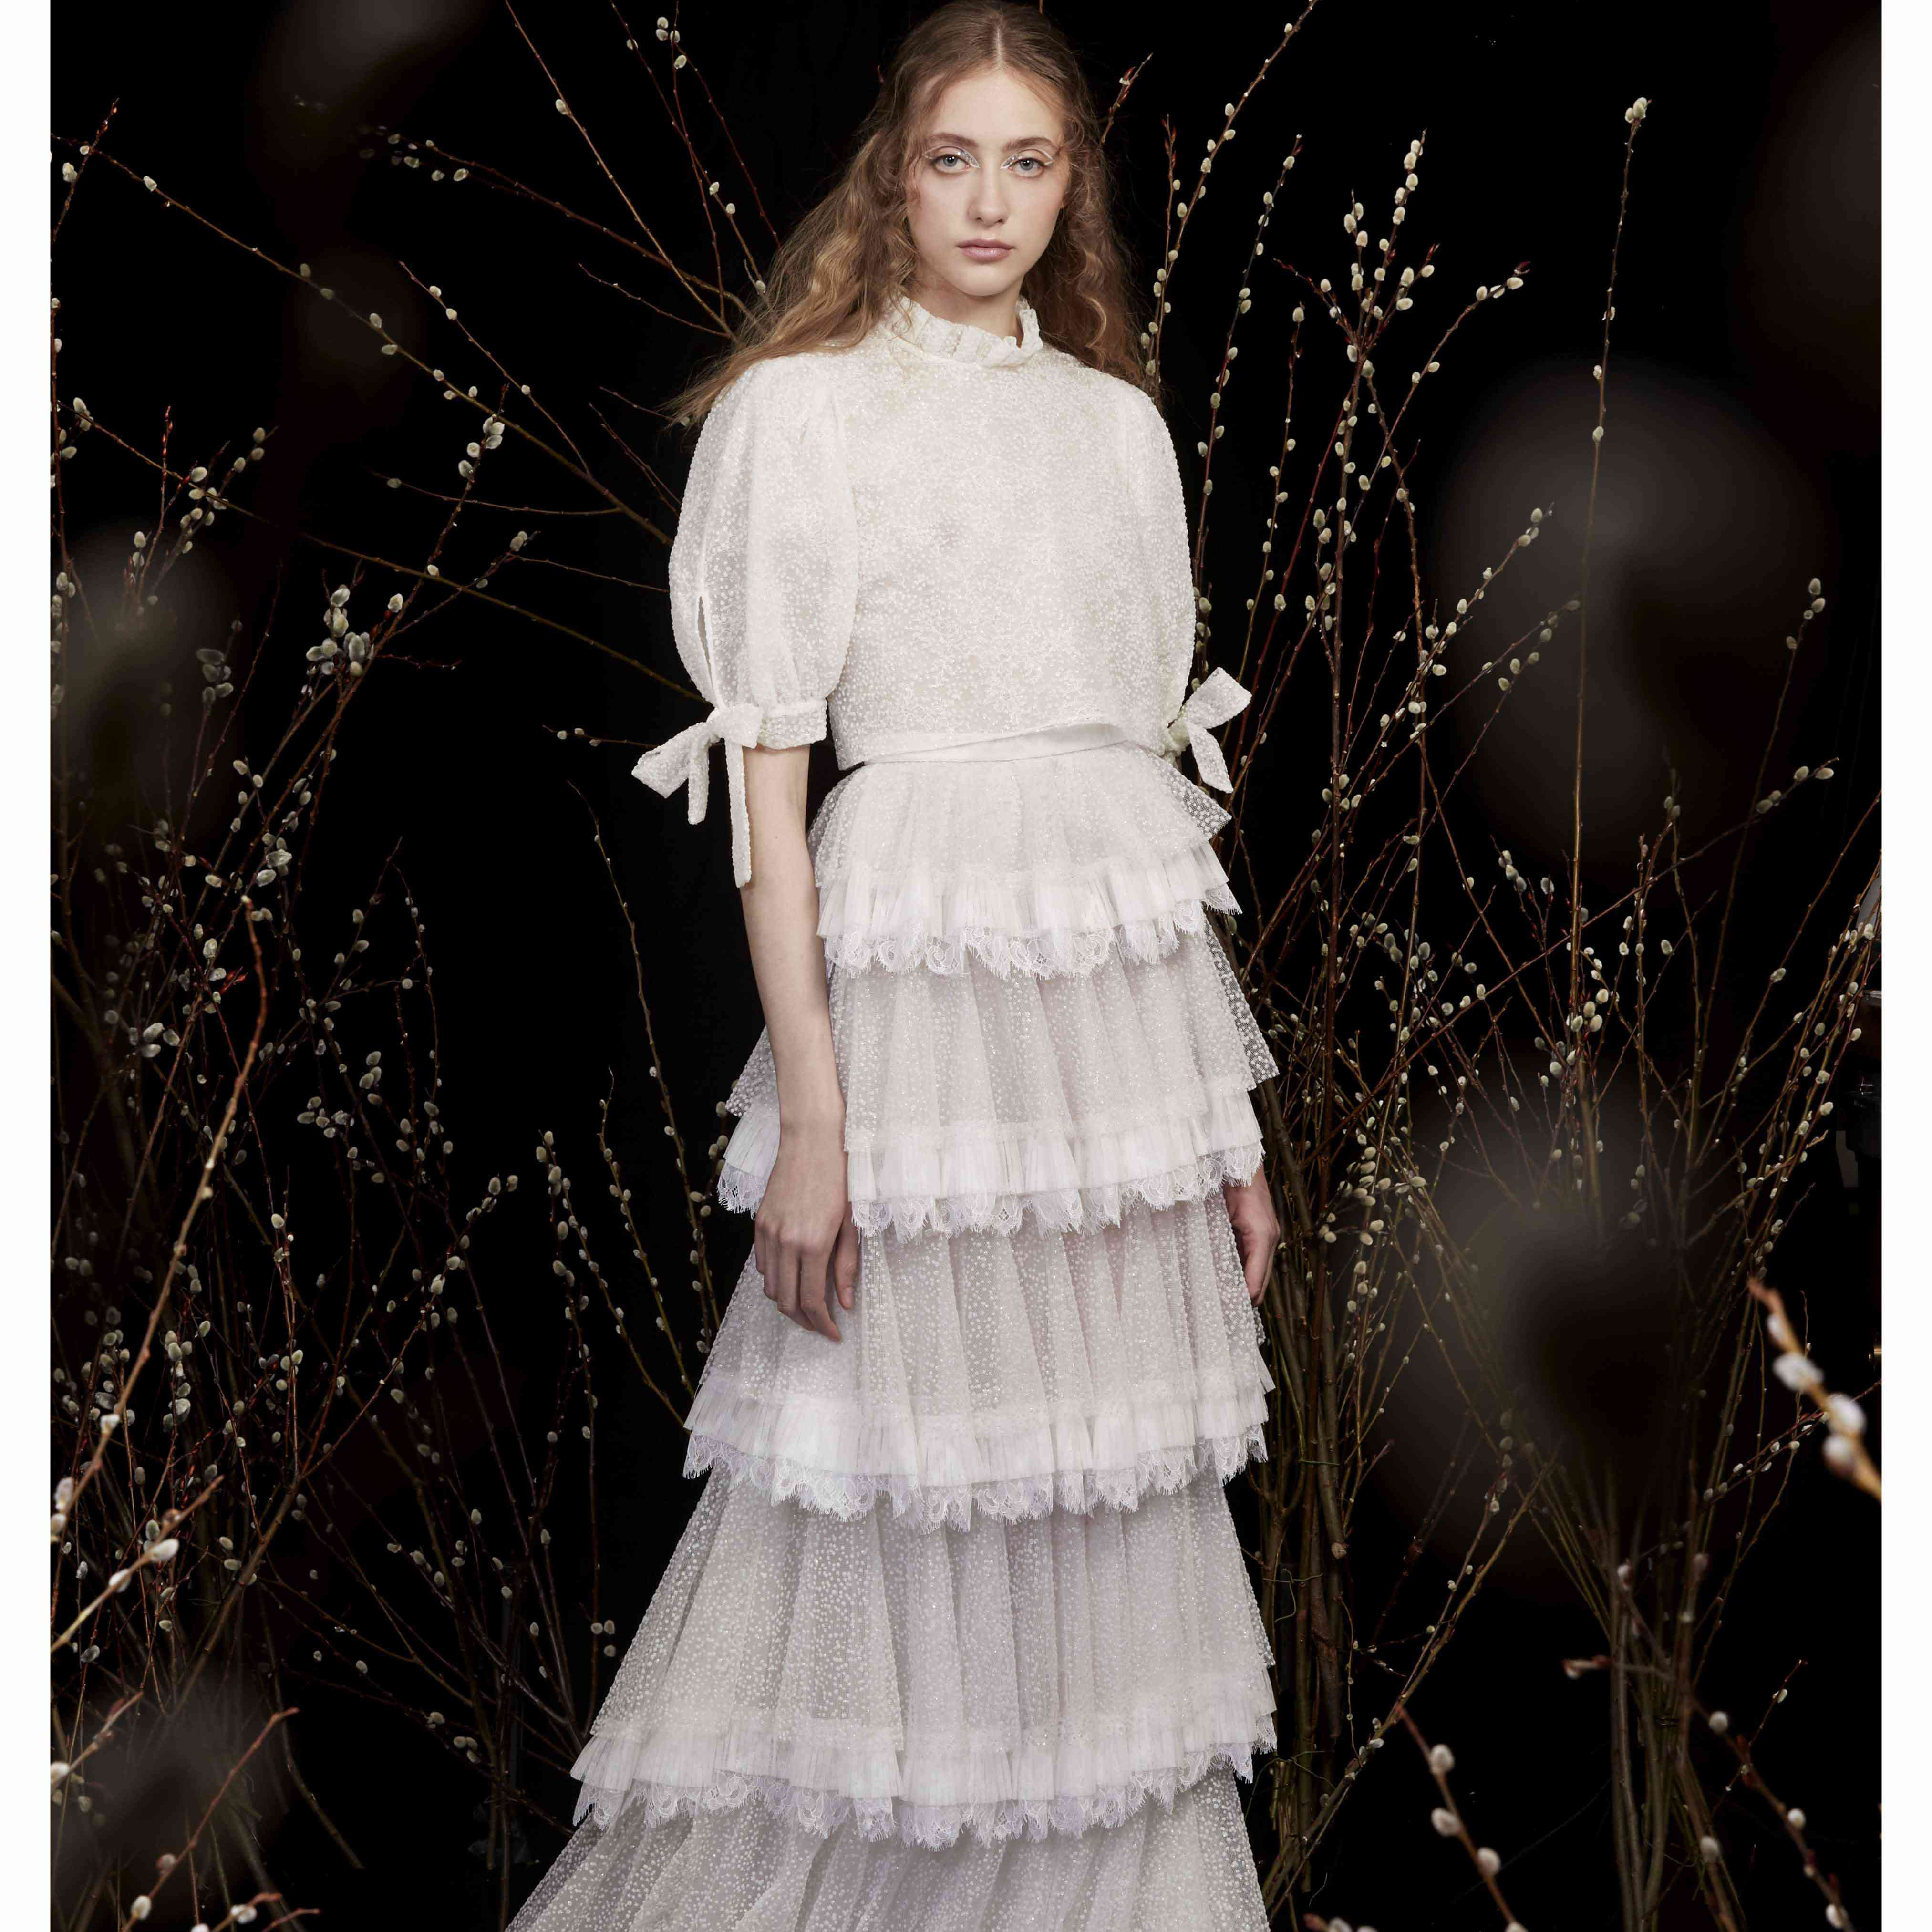 Model in ruffle neck blouse and tiered lace skirt